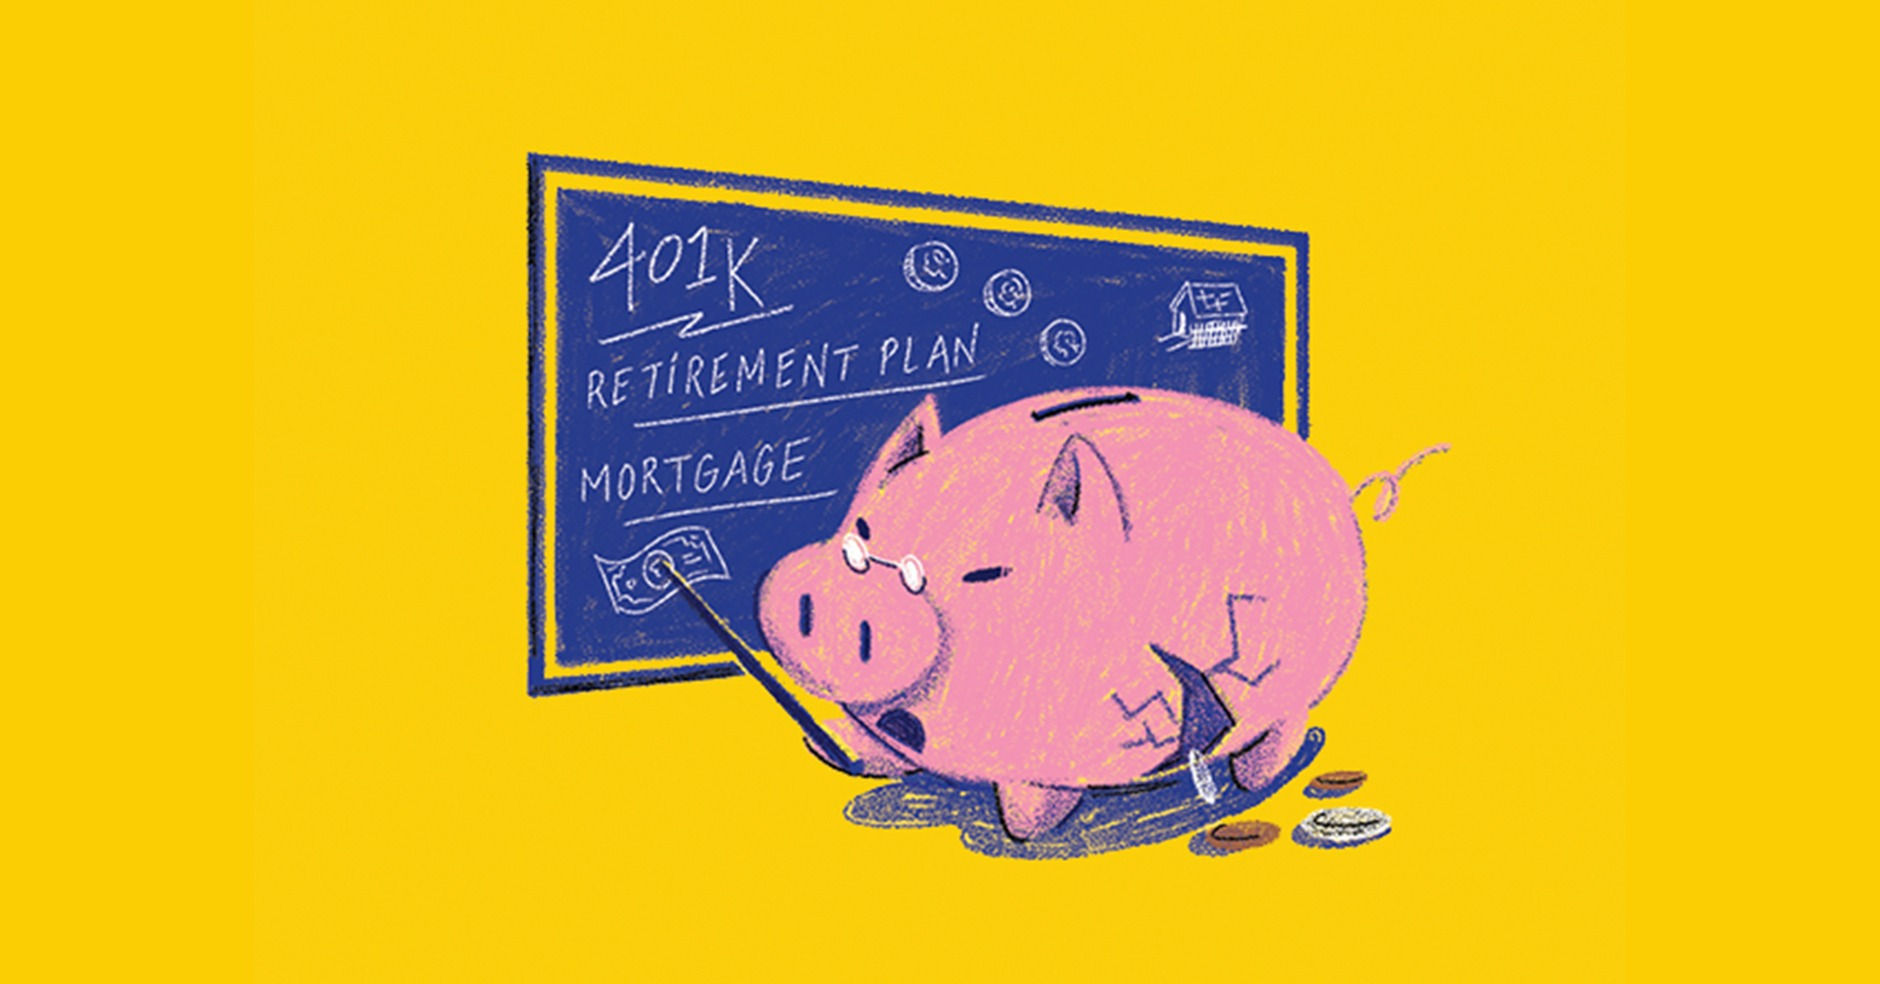 Why isn't personal finance taught in high schools?